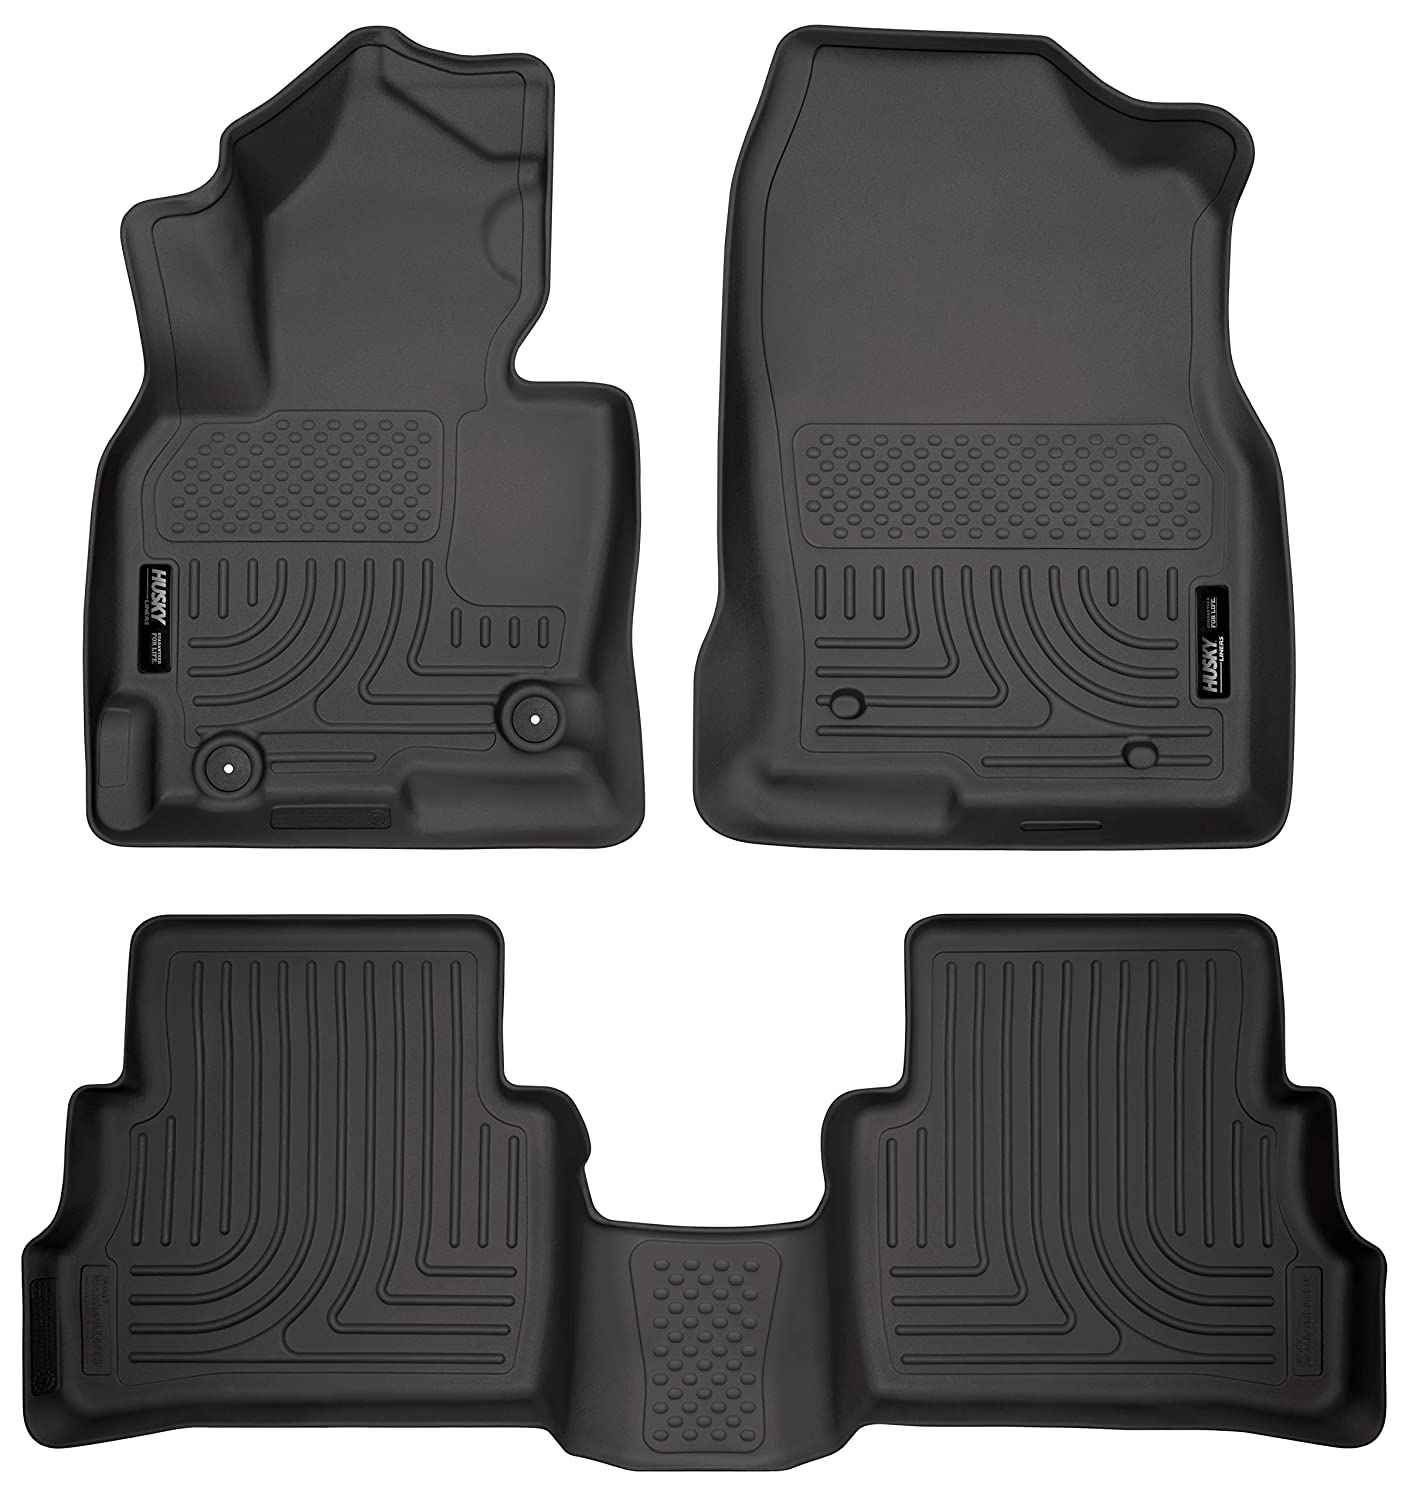 Husky Liners Front /& 2nd Seat Floor Liners Fits 13-16 Mazda CX-5 99731